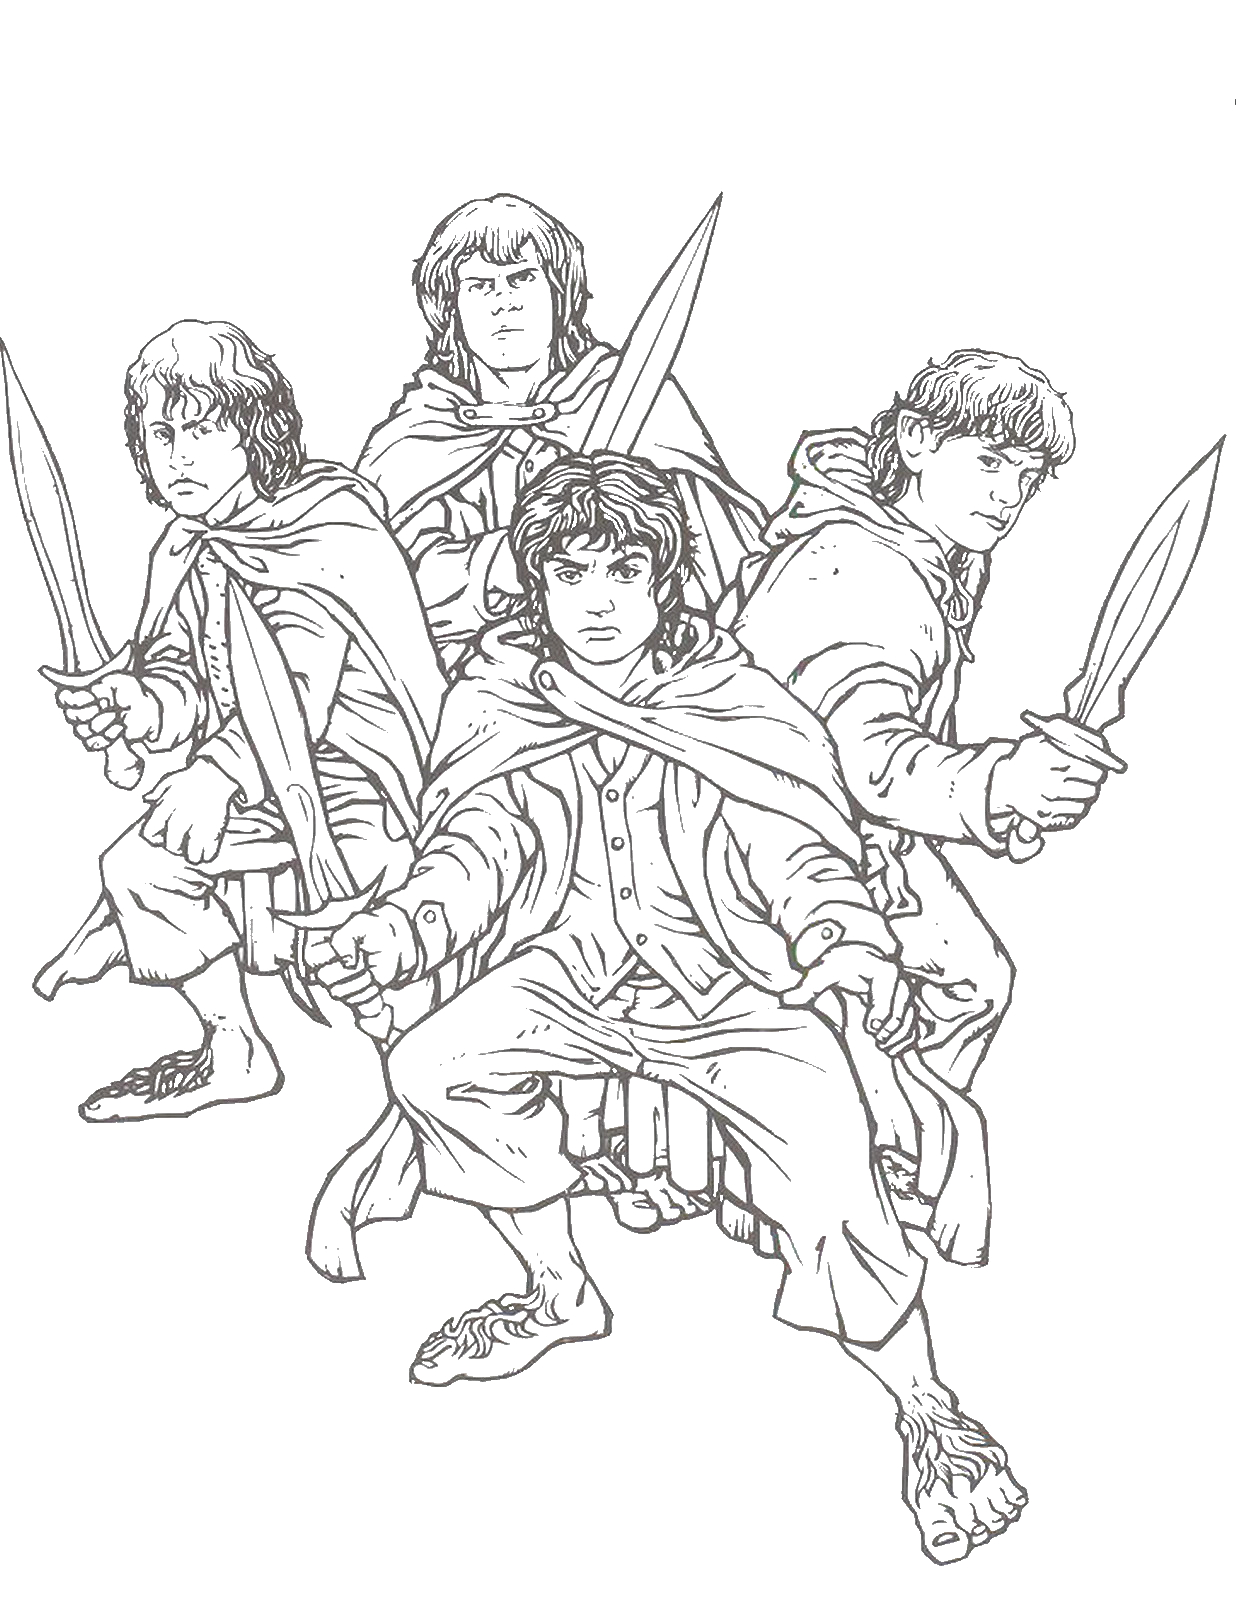 Lord Of the Rings Printable Coloring Pages Lord Of the Rings Coloring Pages